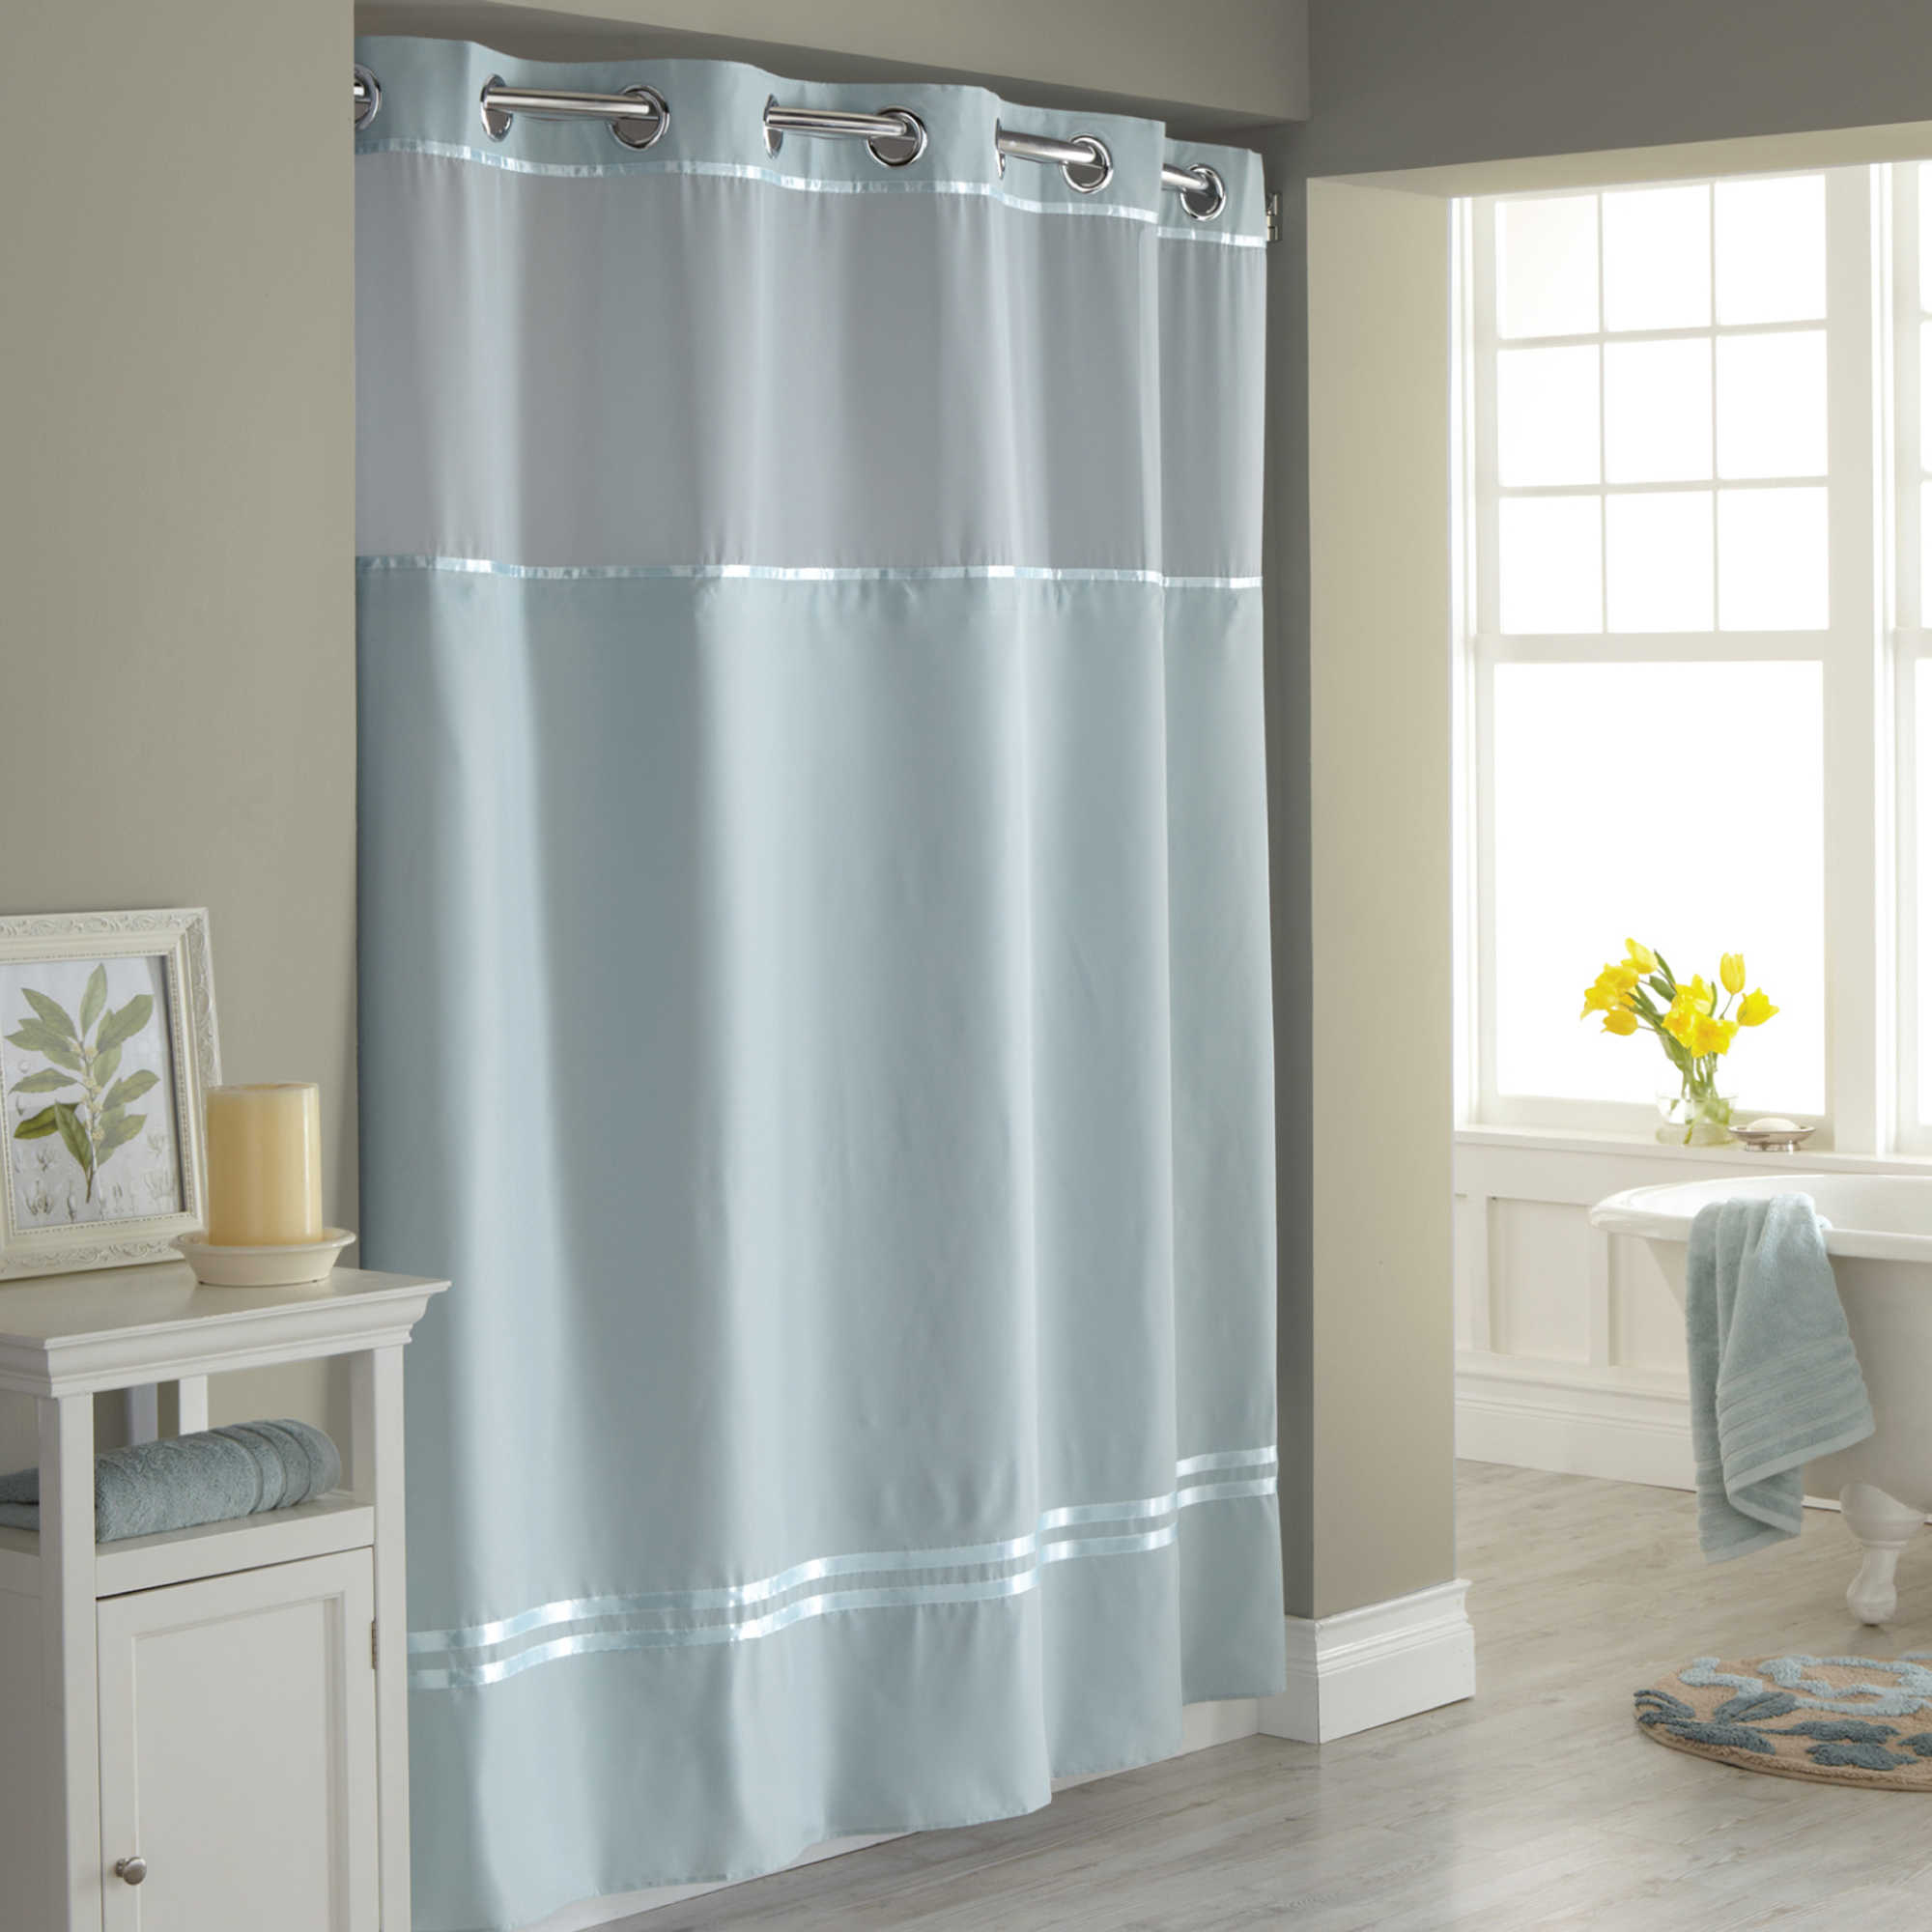 Extra Long Stall Shower Curtain Liner • Shower Curtains Ideas